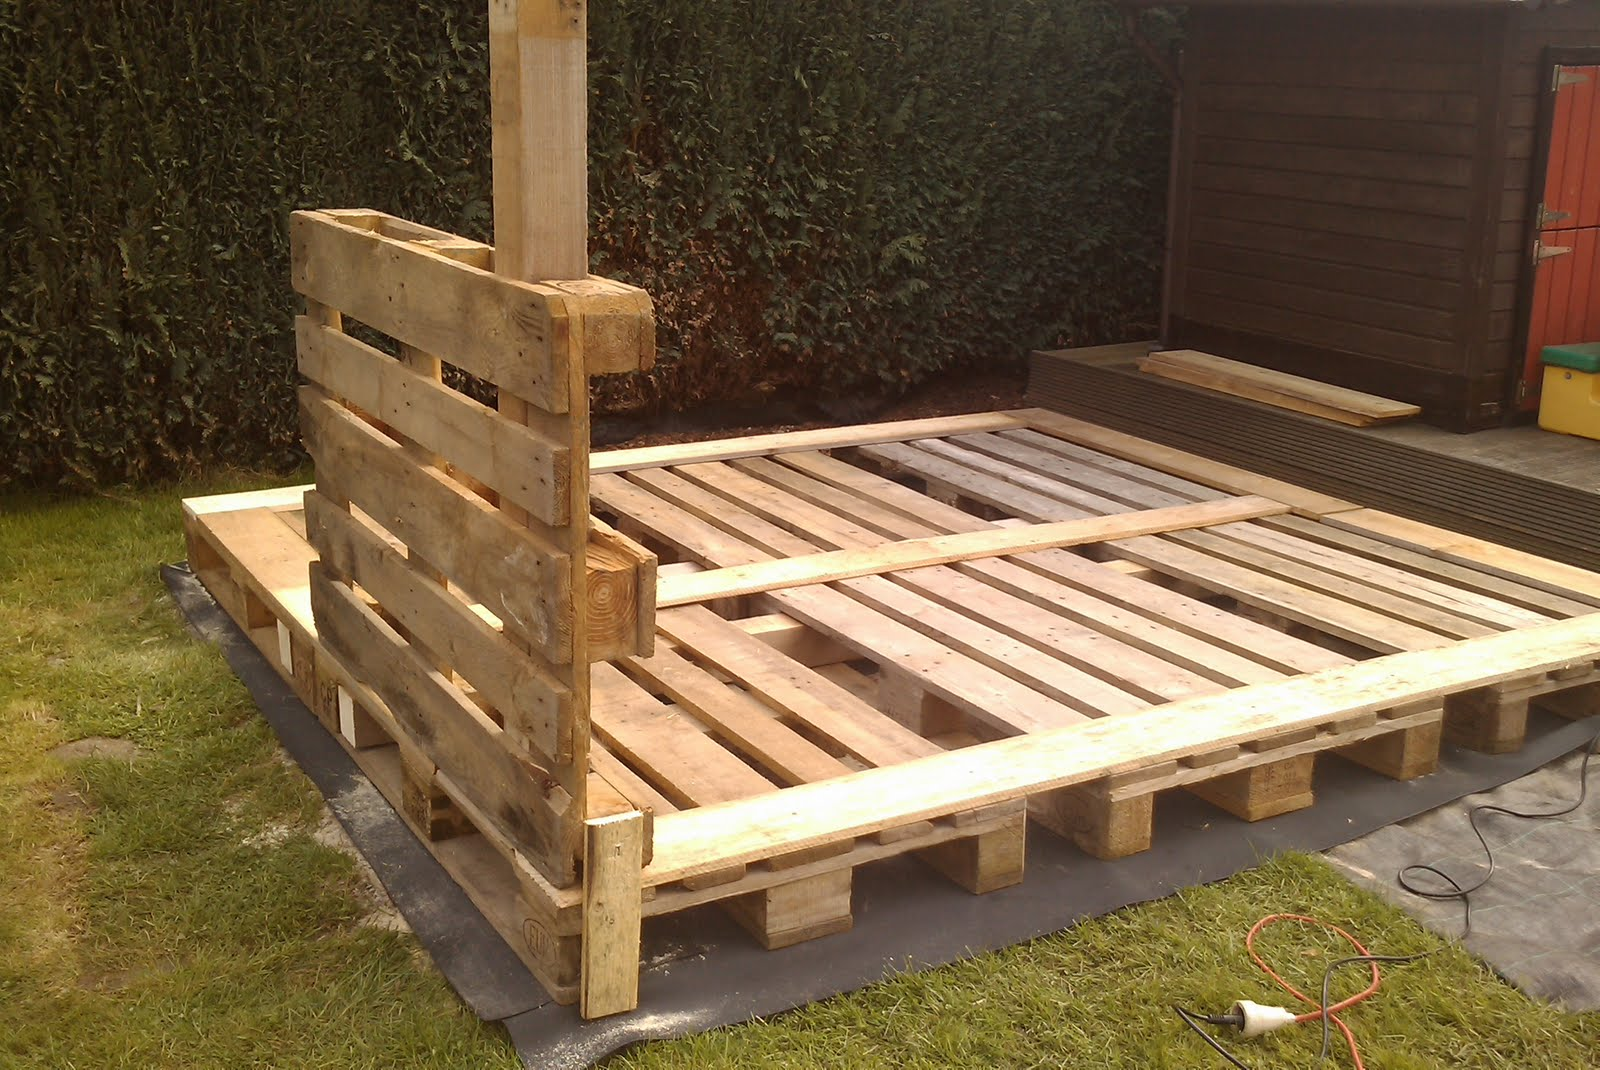 how to build a shed out of wooden pallets | Quick ...